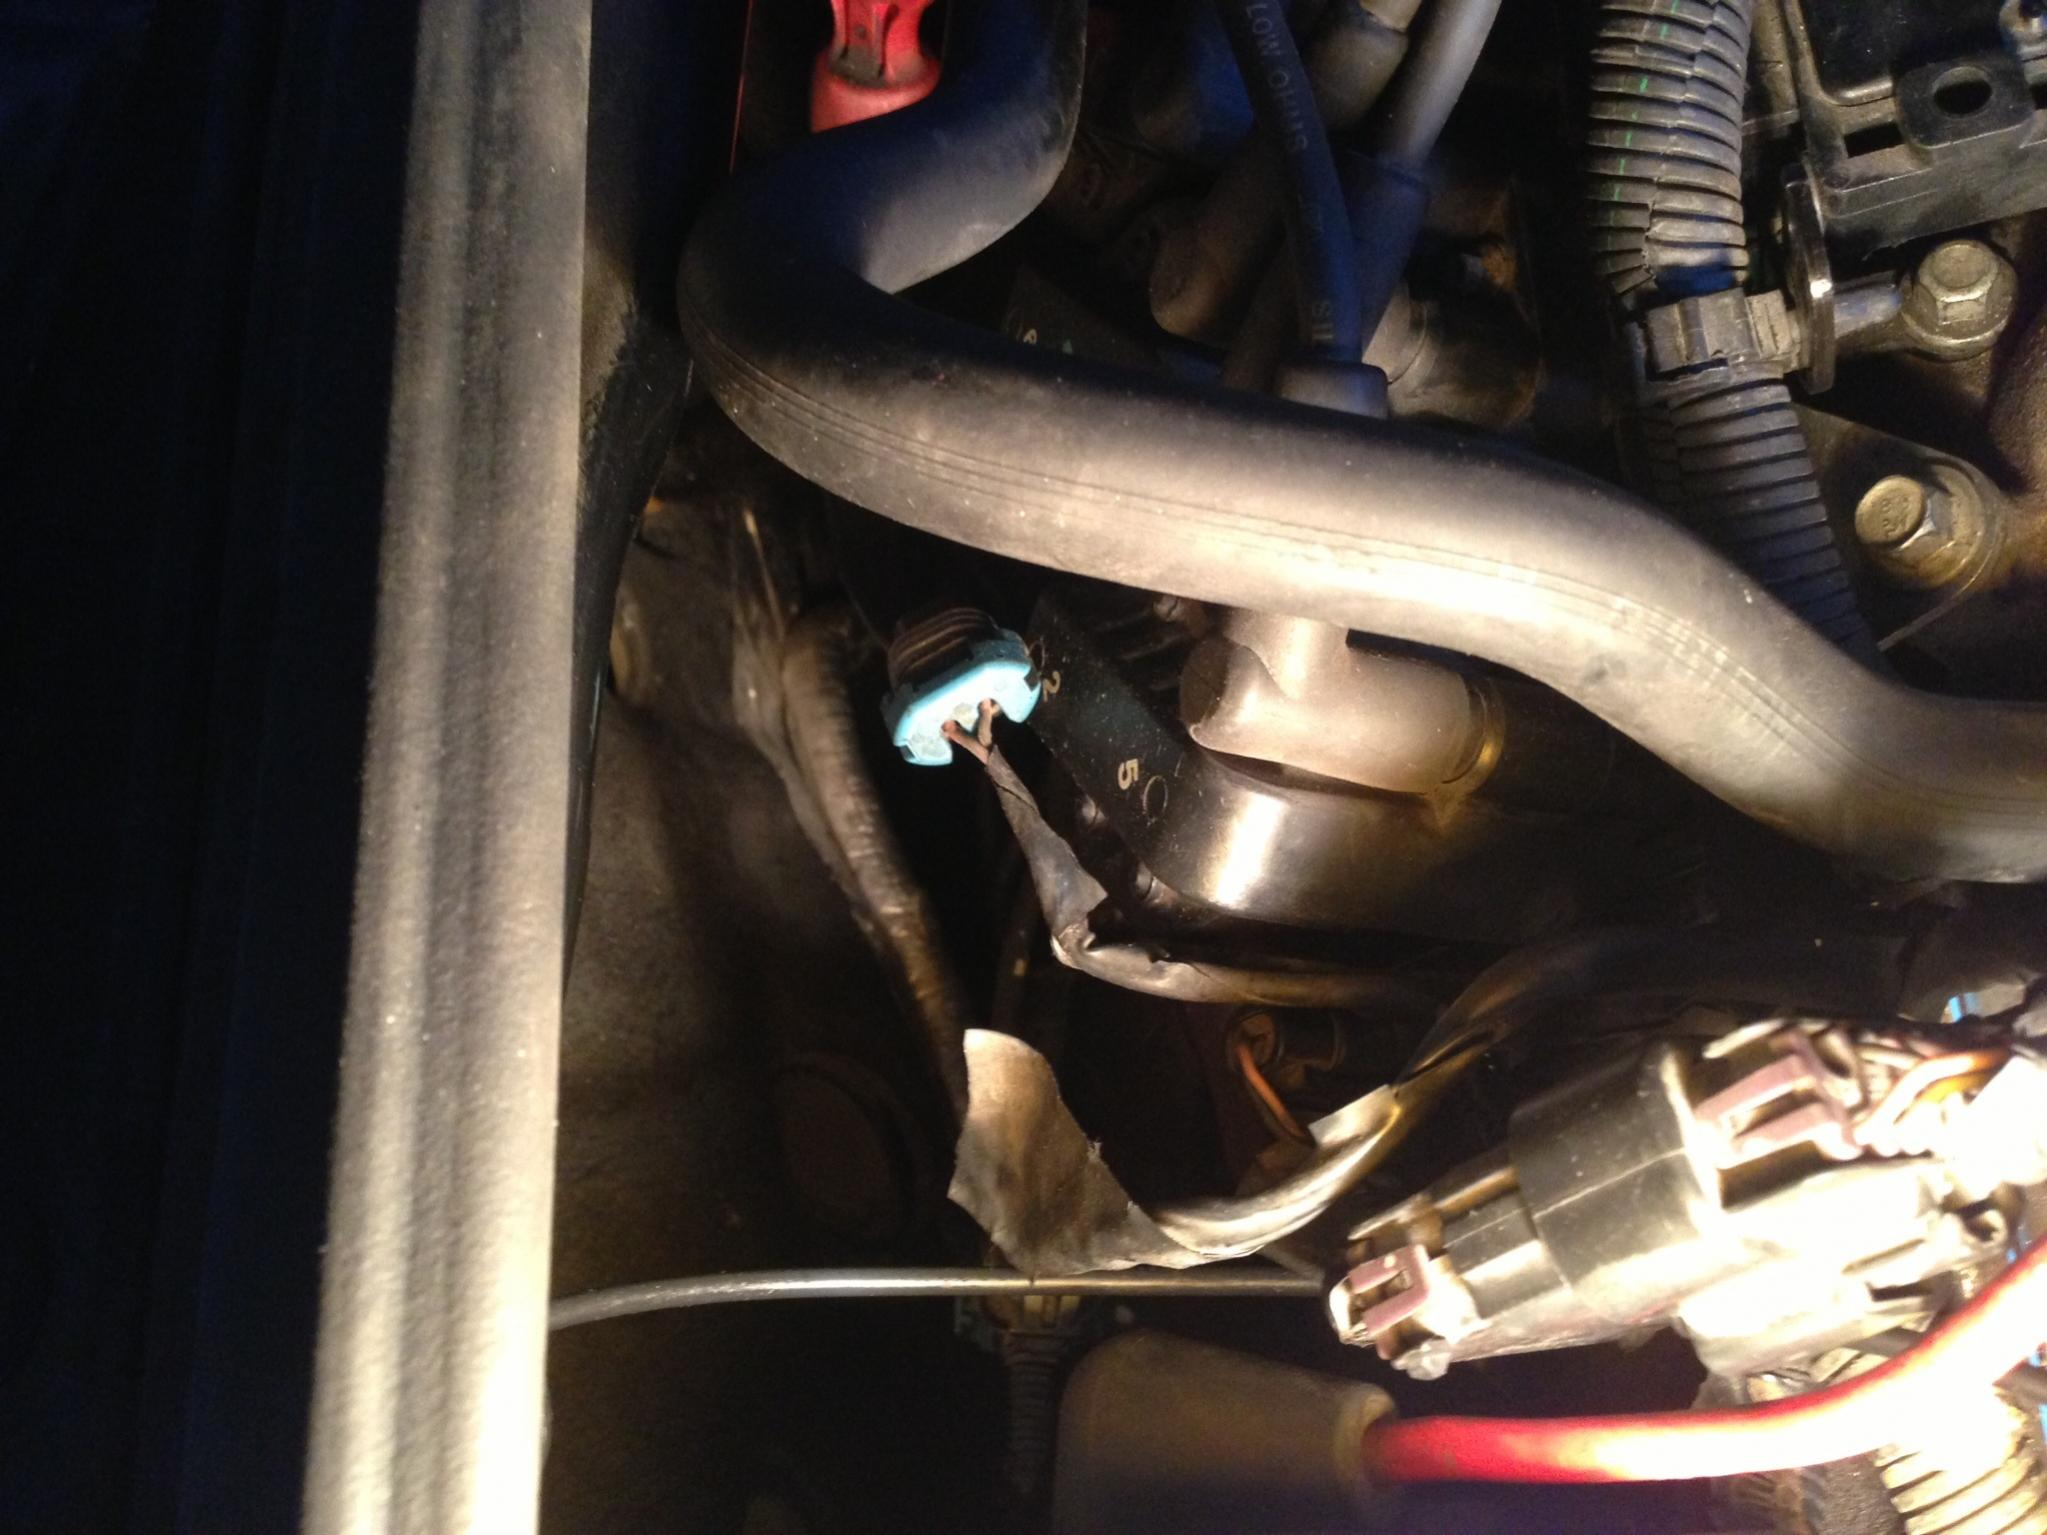 8589d1356793681 3 4 wiring harness question image 3 4 wiring harness question chevy impala forums 2000 chevy impala engine wiring harness at reclaimingppi.co